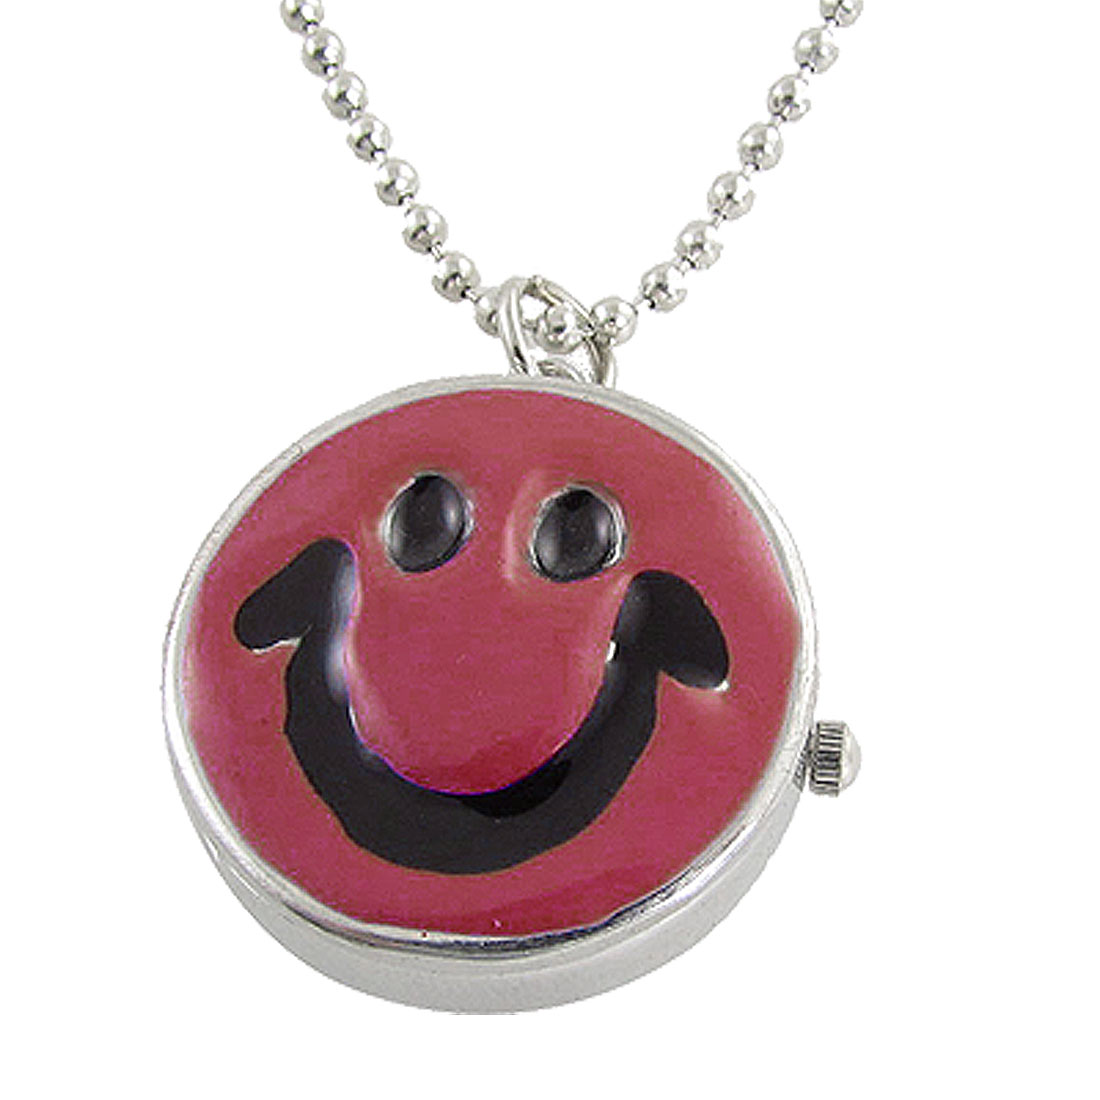 Ladies Silver Tone Chain Red Black Smiling Face Necklace Watch